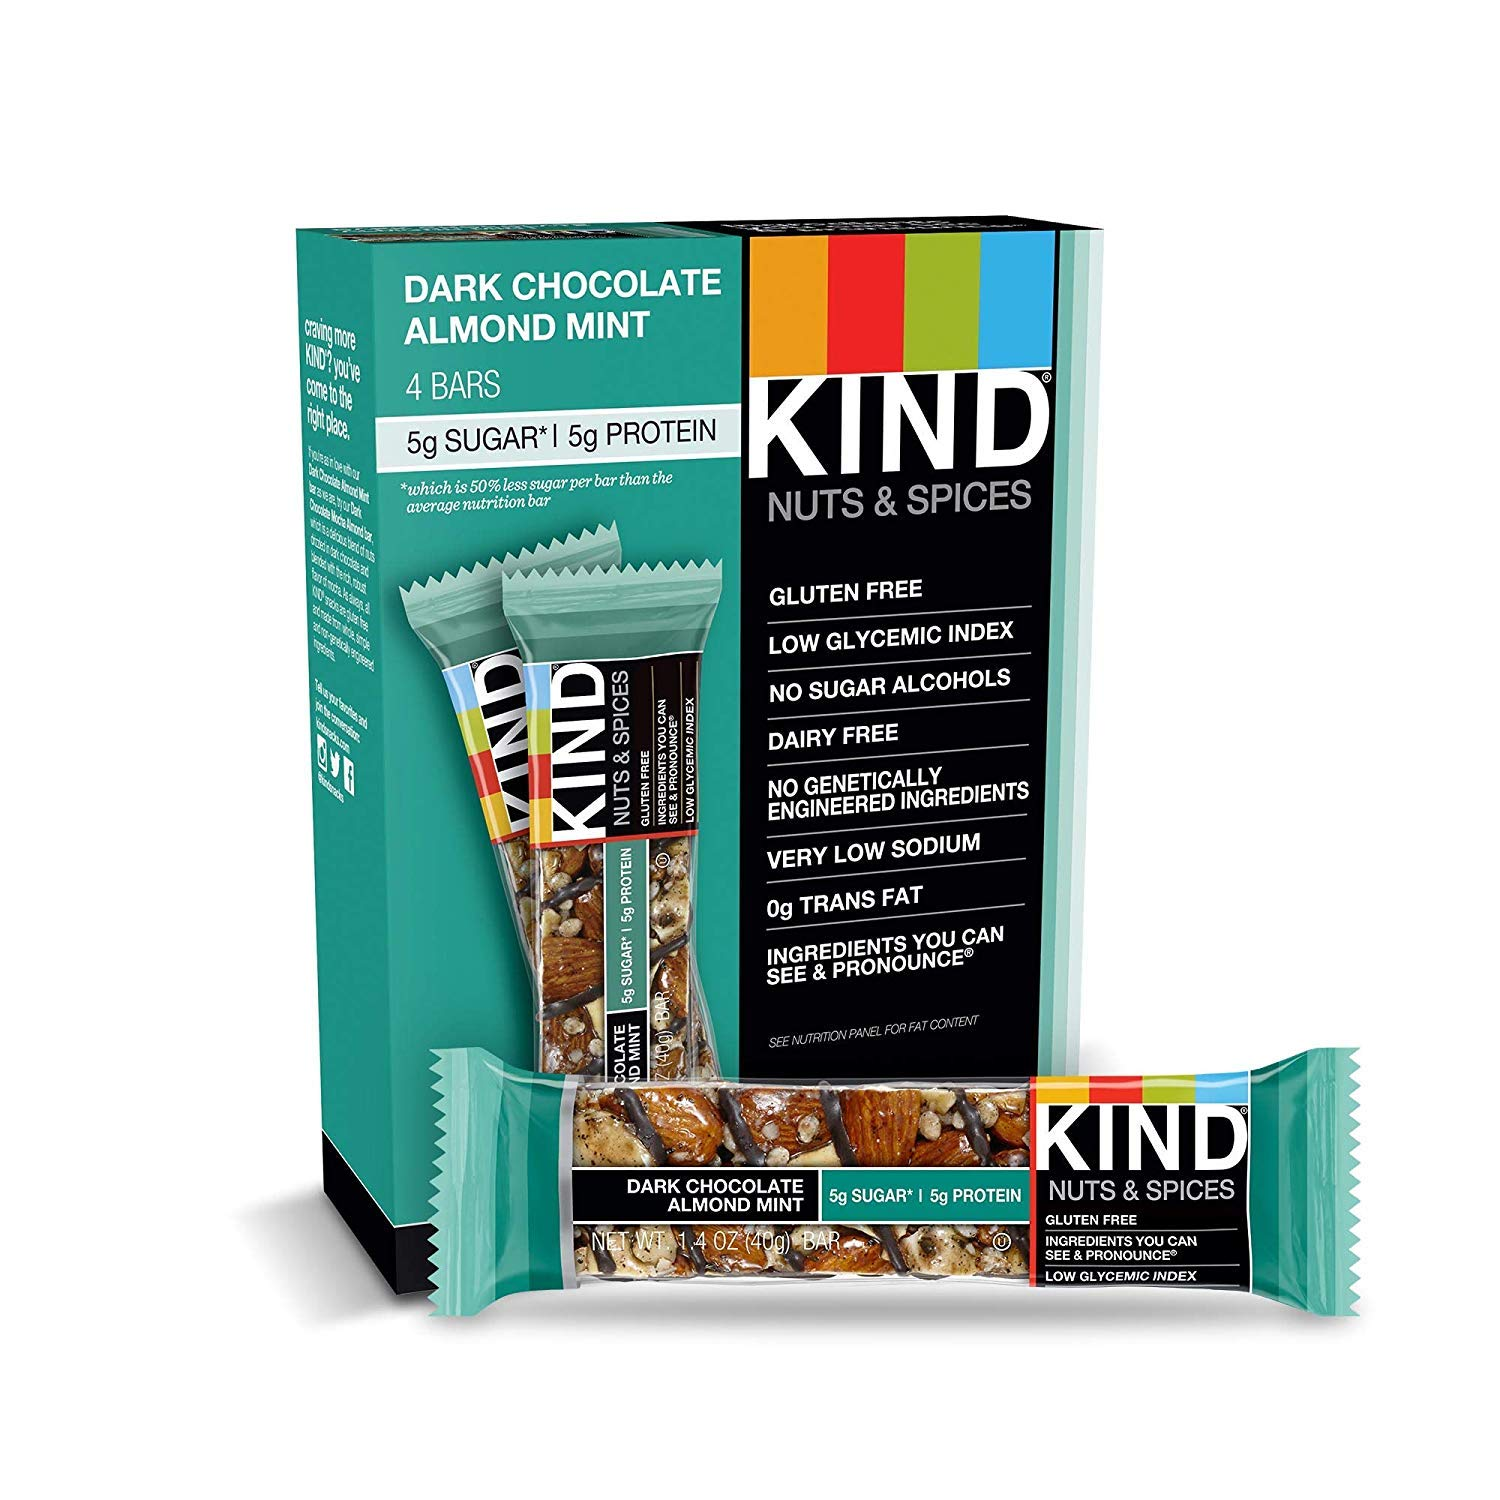 KIND Nuts and Spices, Dark Chocolate Almond Mint, 48 Count by KIND